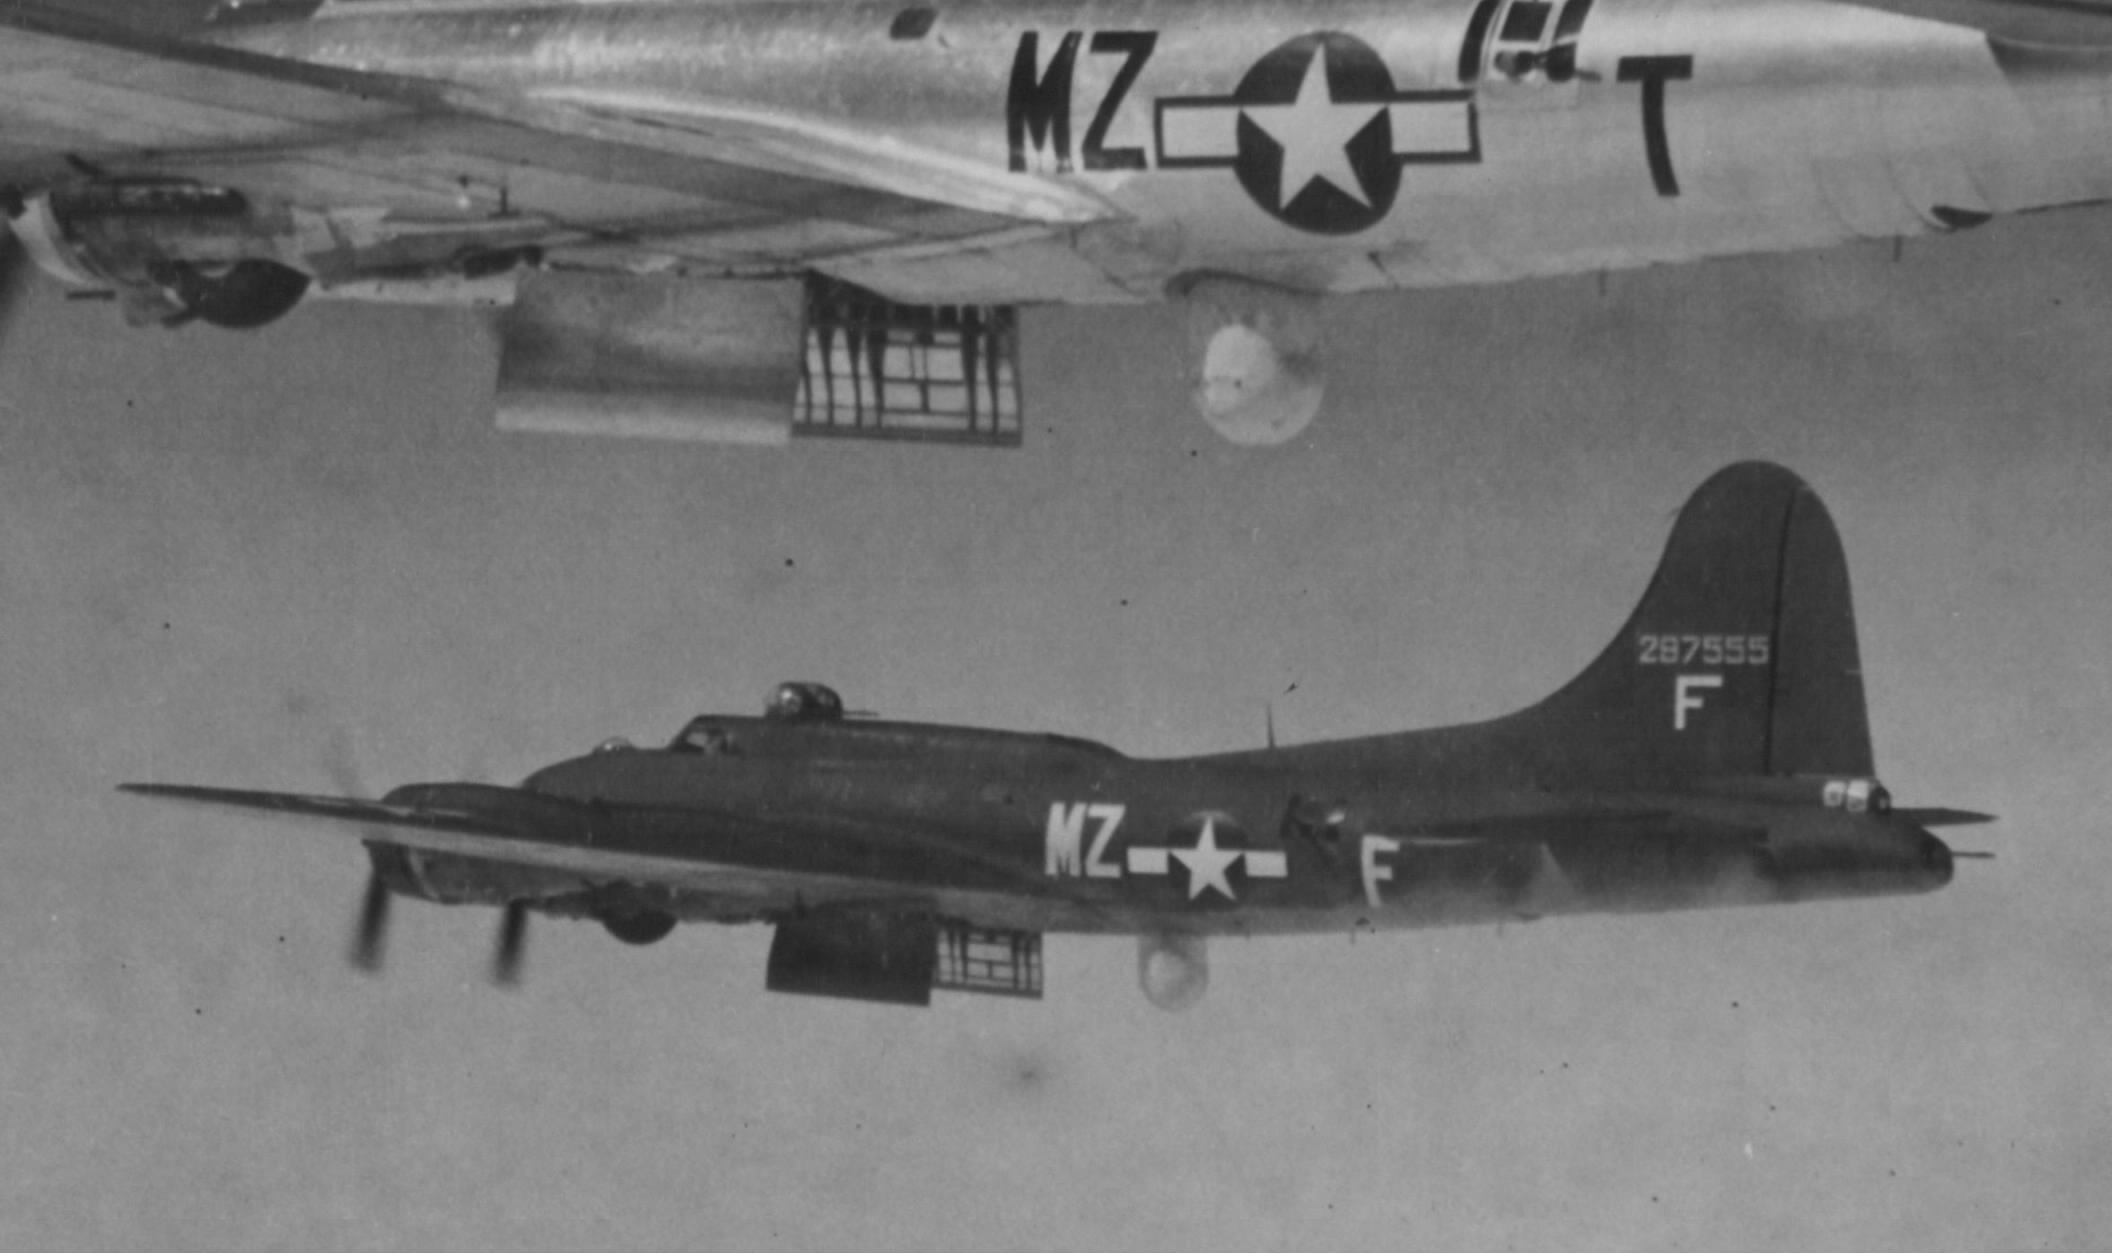 B-17 #42-97555 / Island F for Fox aka Dan Boone